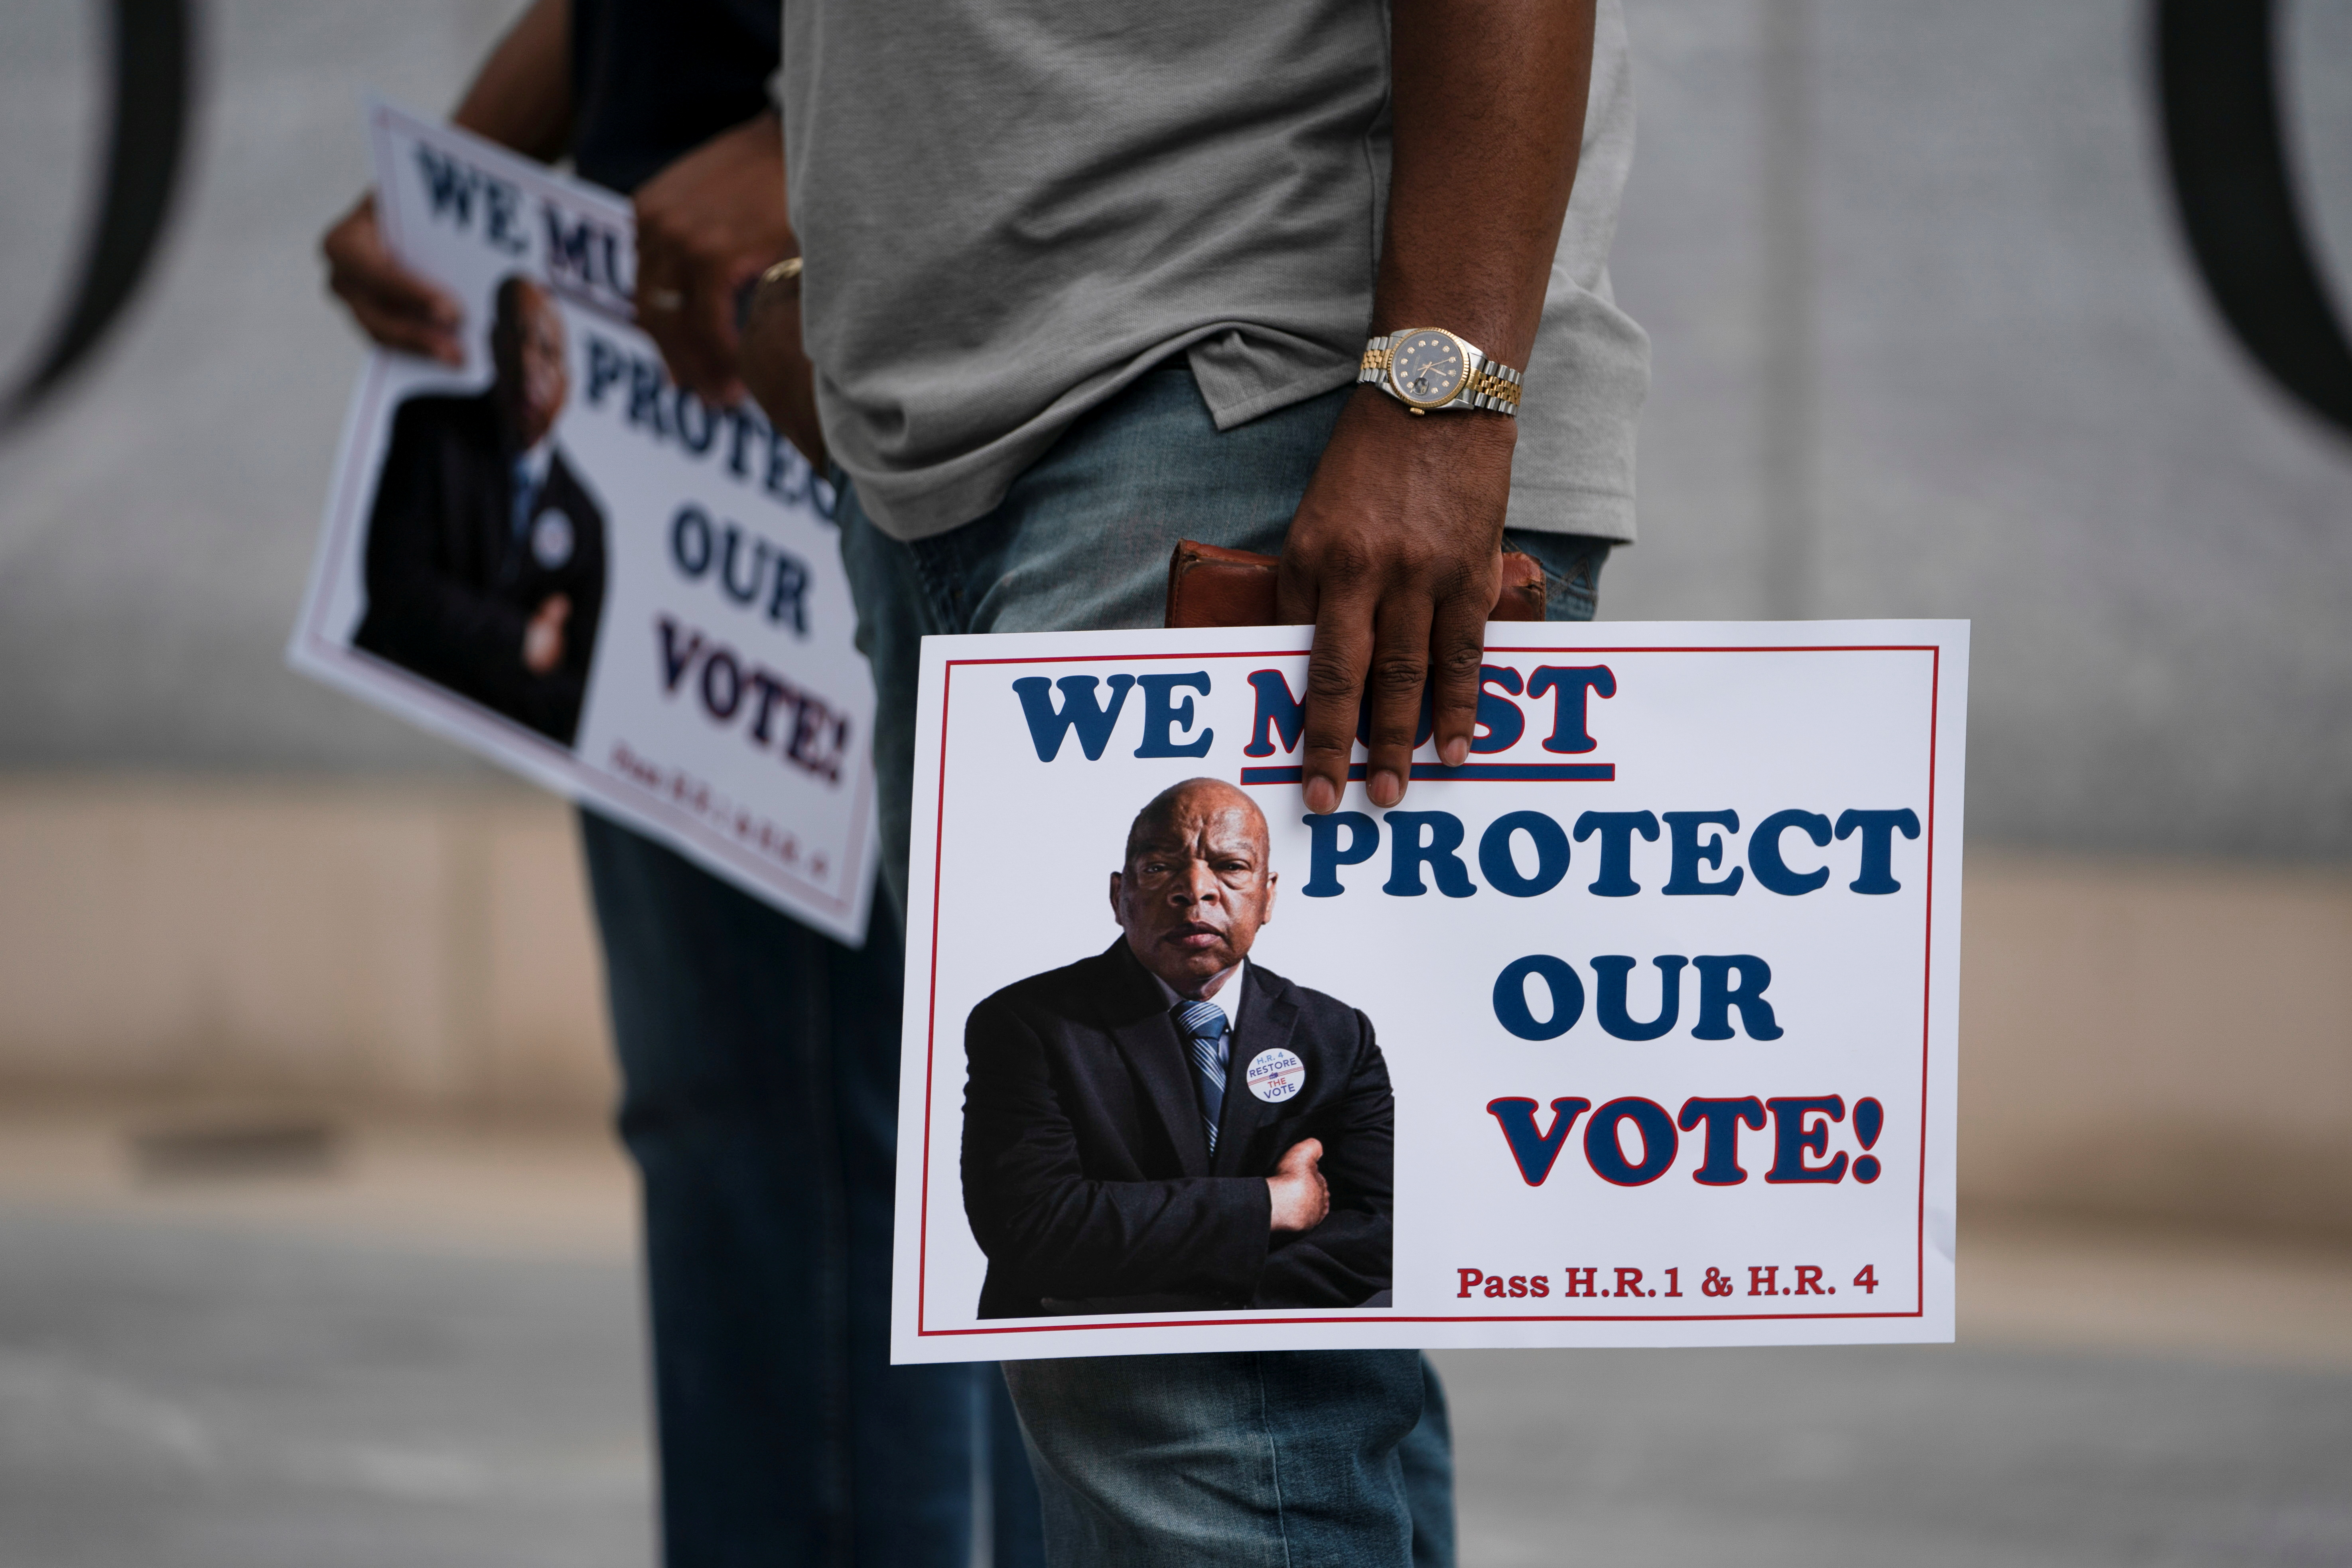 A person holds signs during a rally against the state's new voting restrictions outside the Georgia State Capitol, in Atlanta, Georgia, U.S., June 8, 2021. REUTERS/Elijah Nouvelage/File Photo